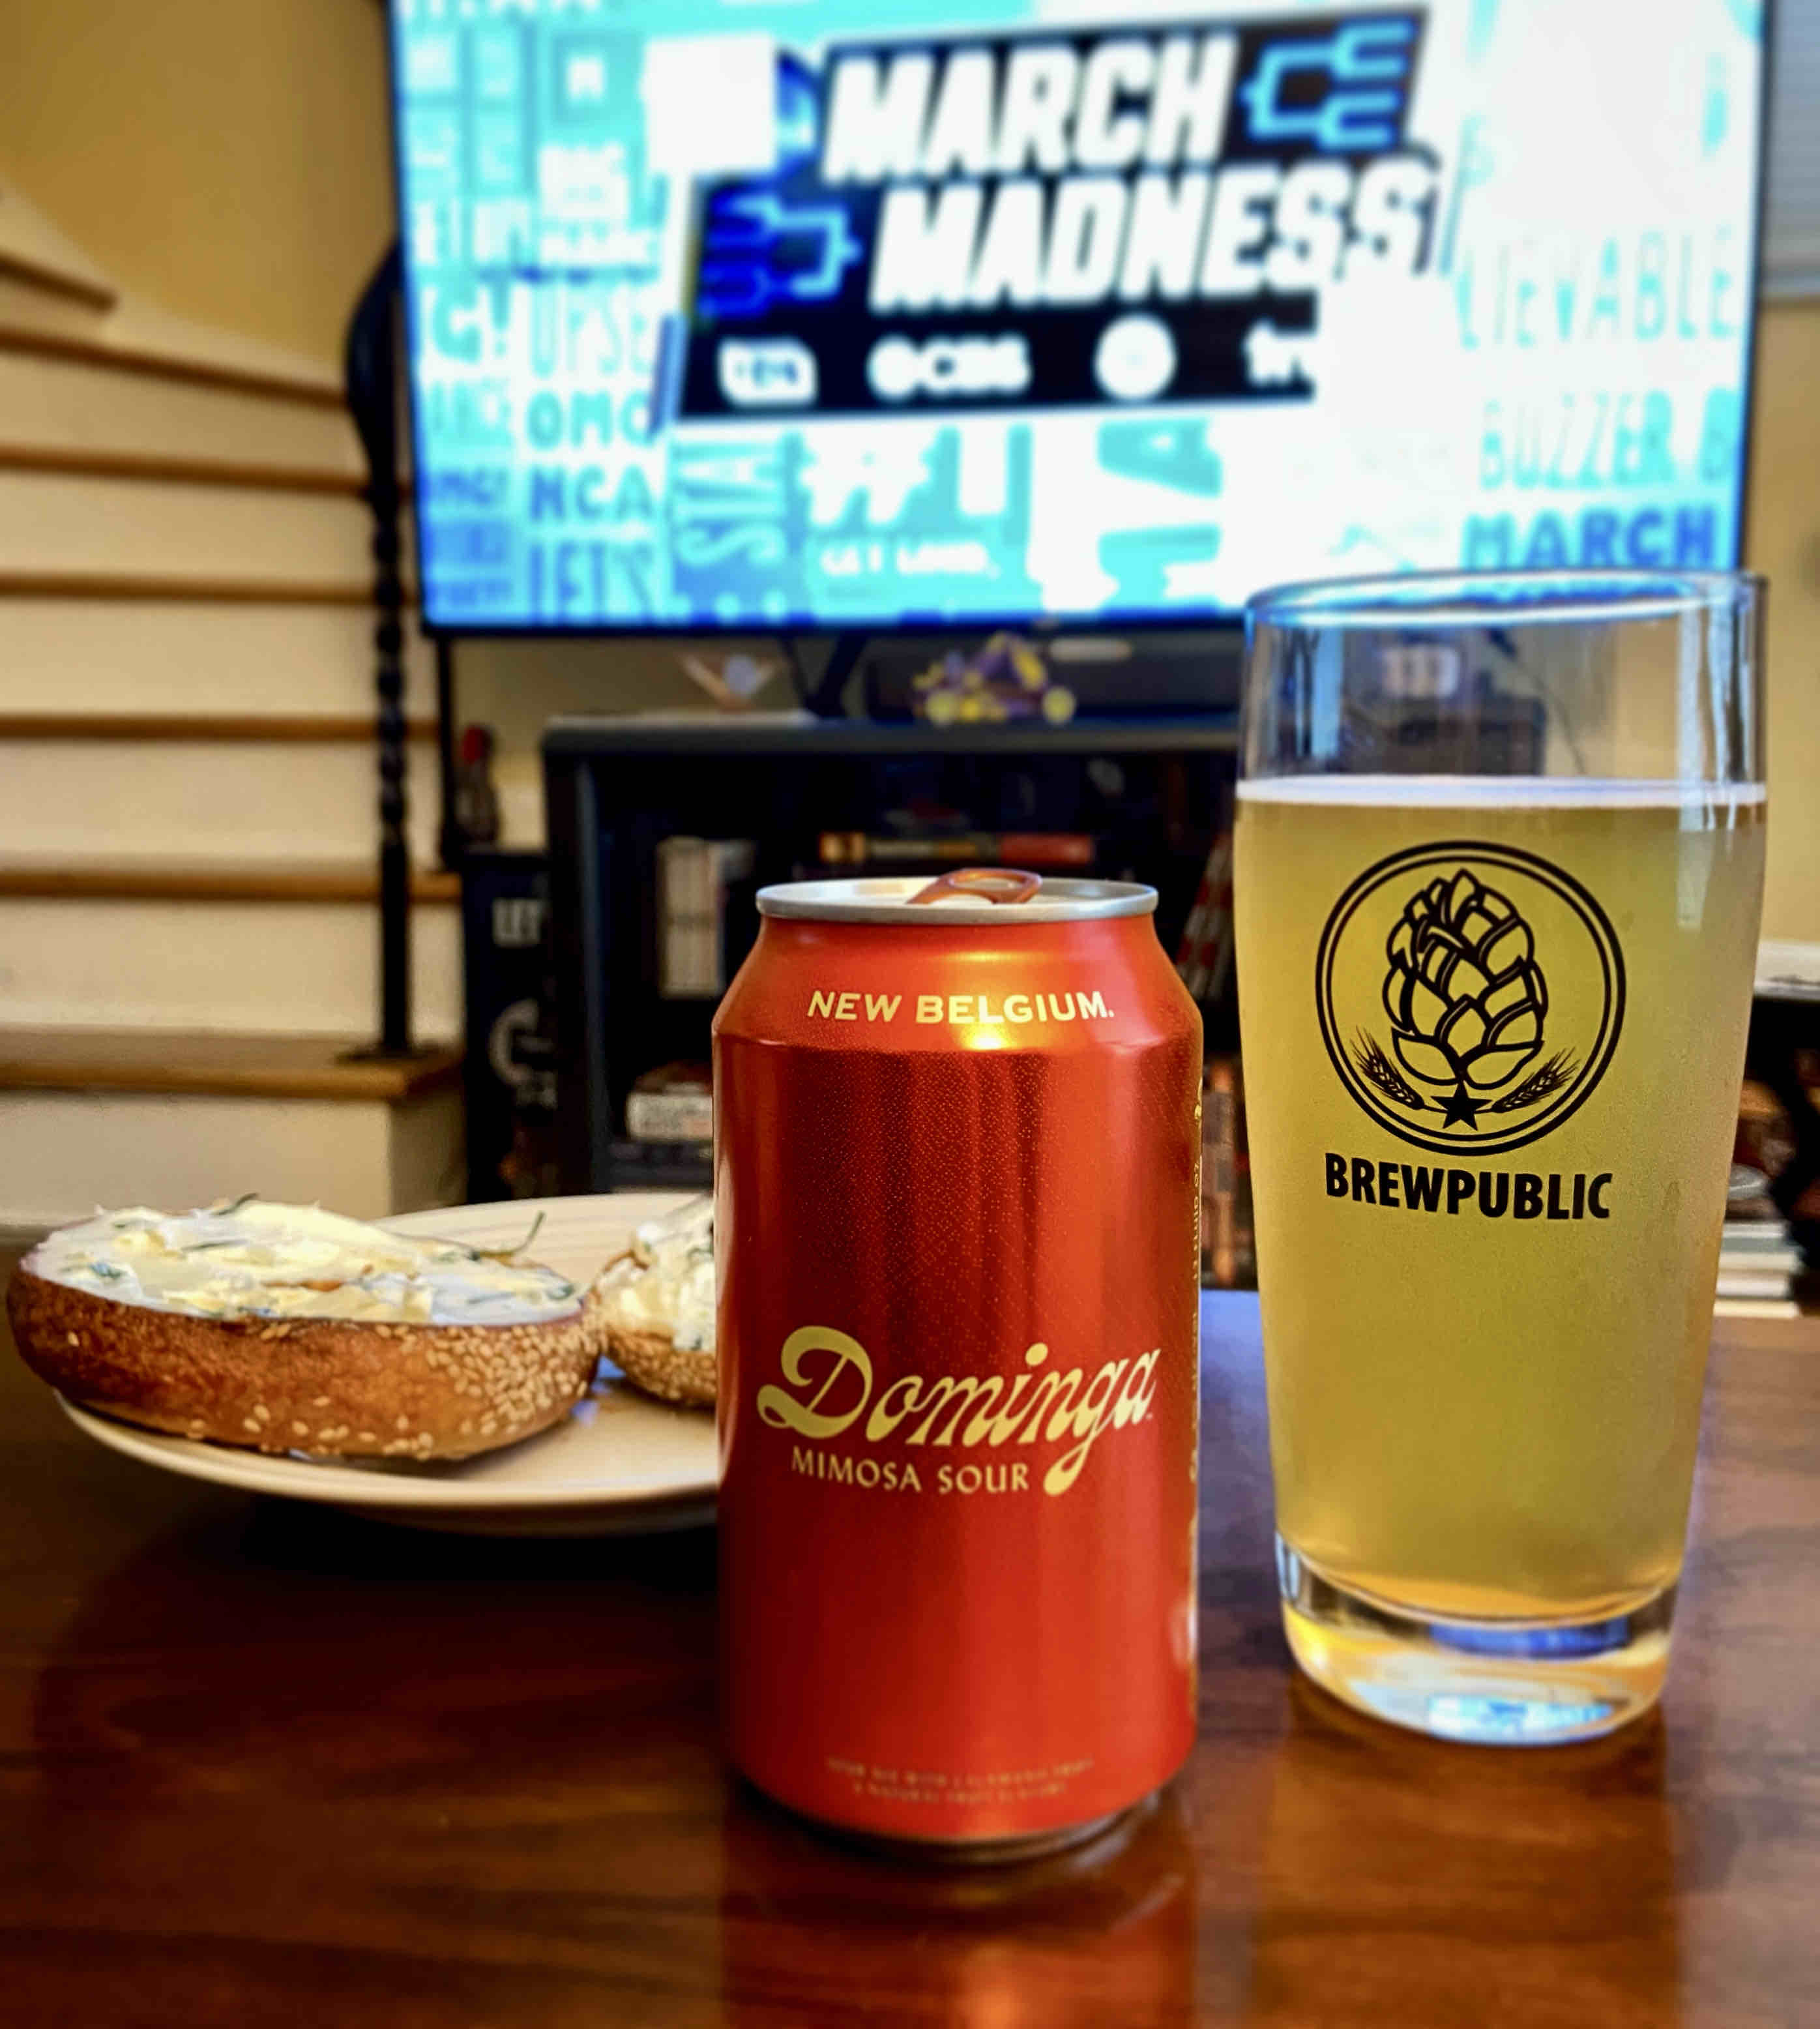 Dominga, the new citrus sour ale from New Belgium Brewing is a perfect companion to brunch.